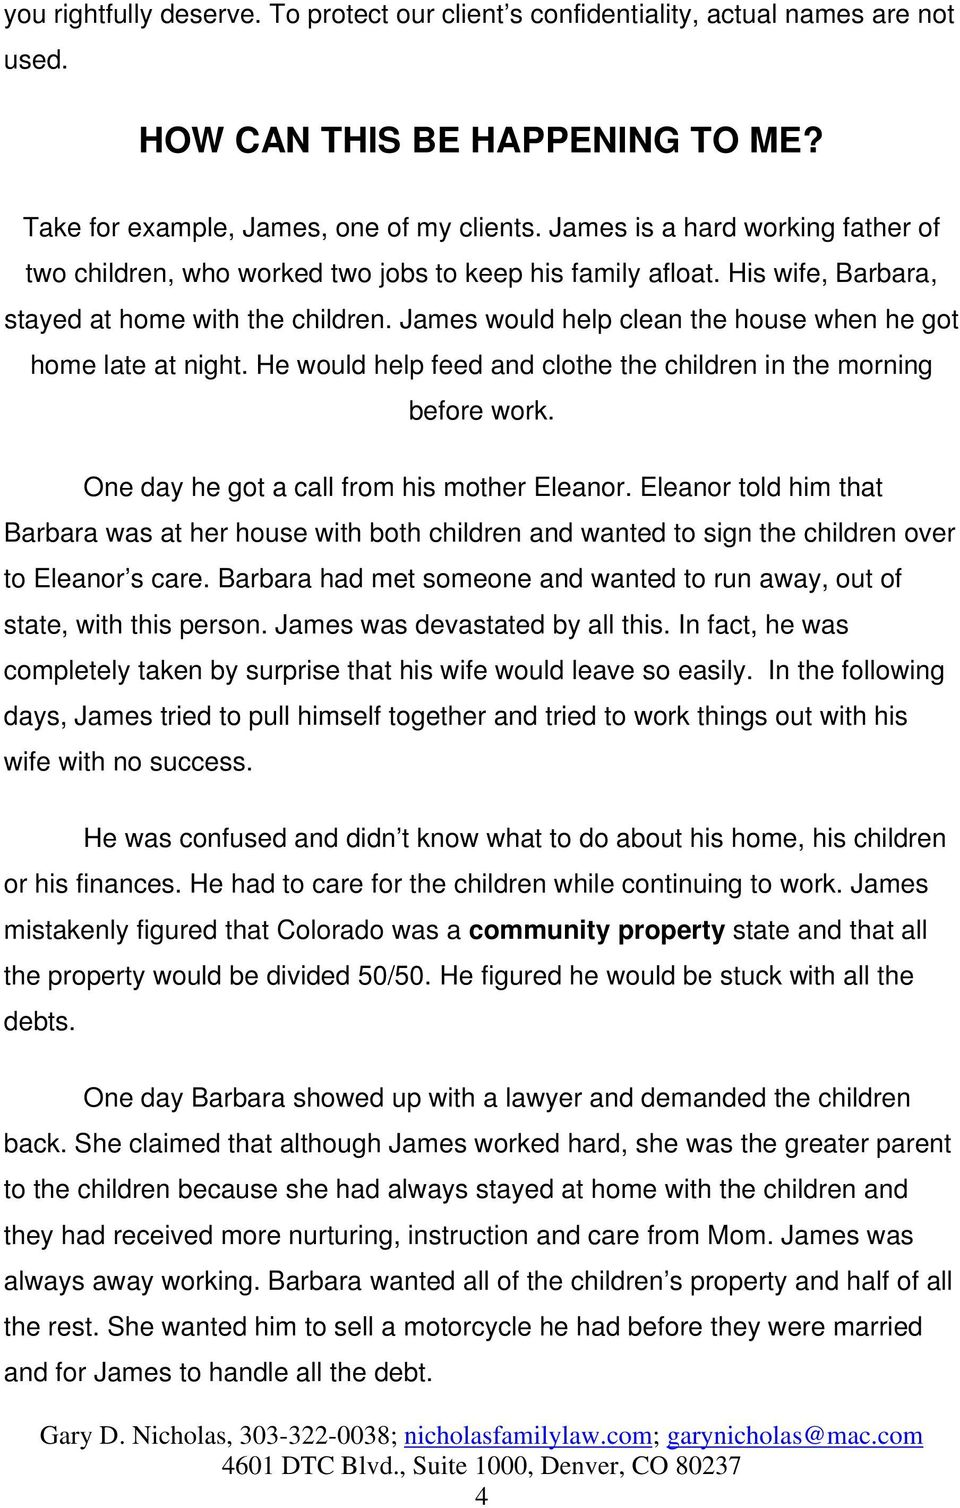 James would help clean the house when he got home late at night. He would help feed and clothe the children in the morning before work. One day he got a call from his mother Eleanor.